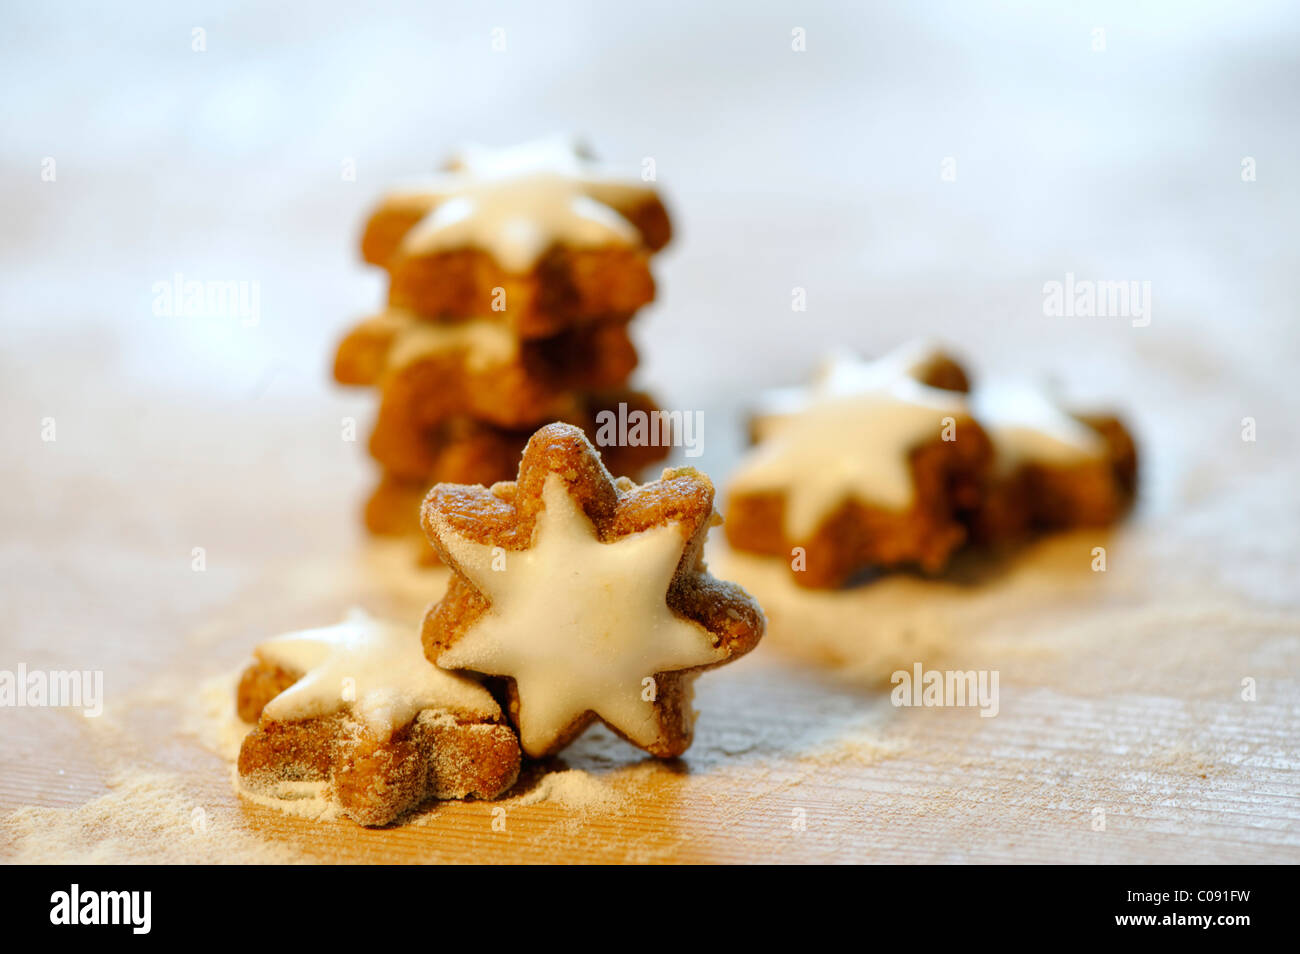 Star-shaped cinnamon biscuits - Stock Image